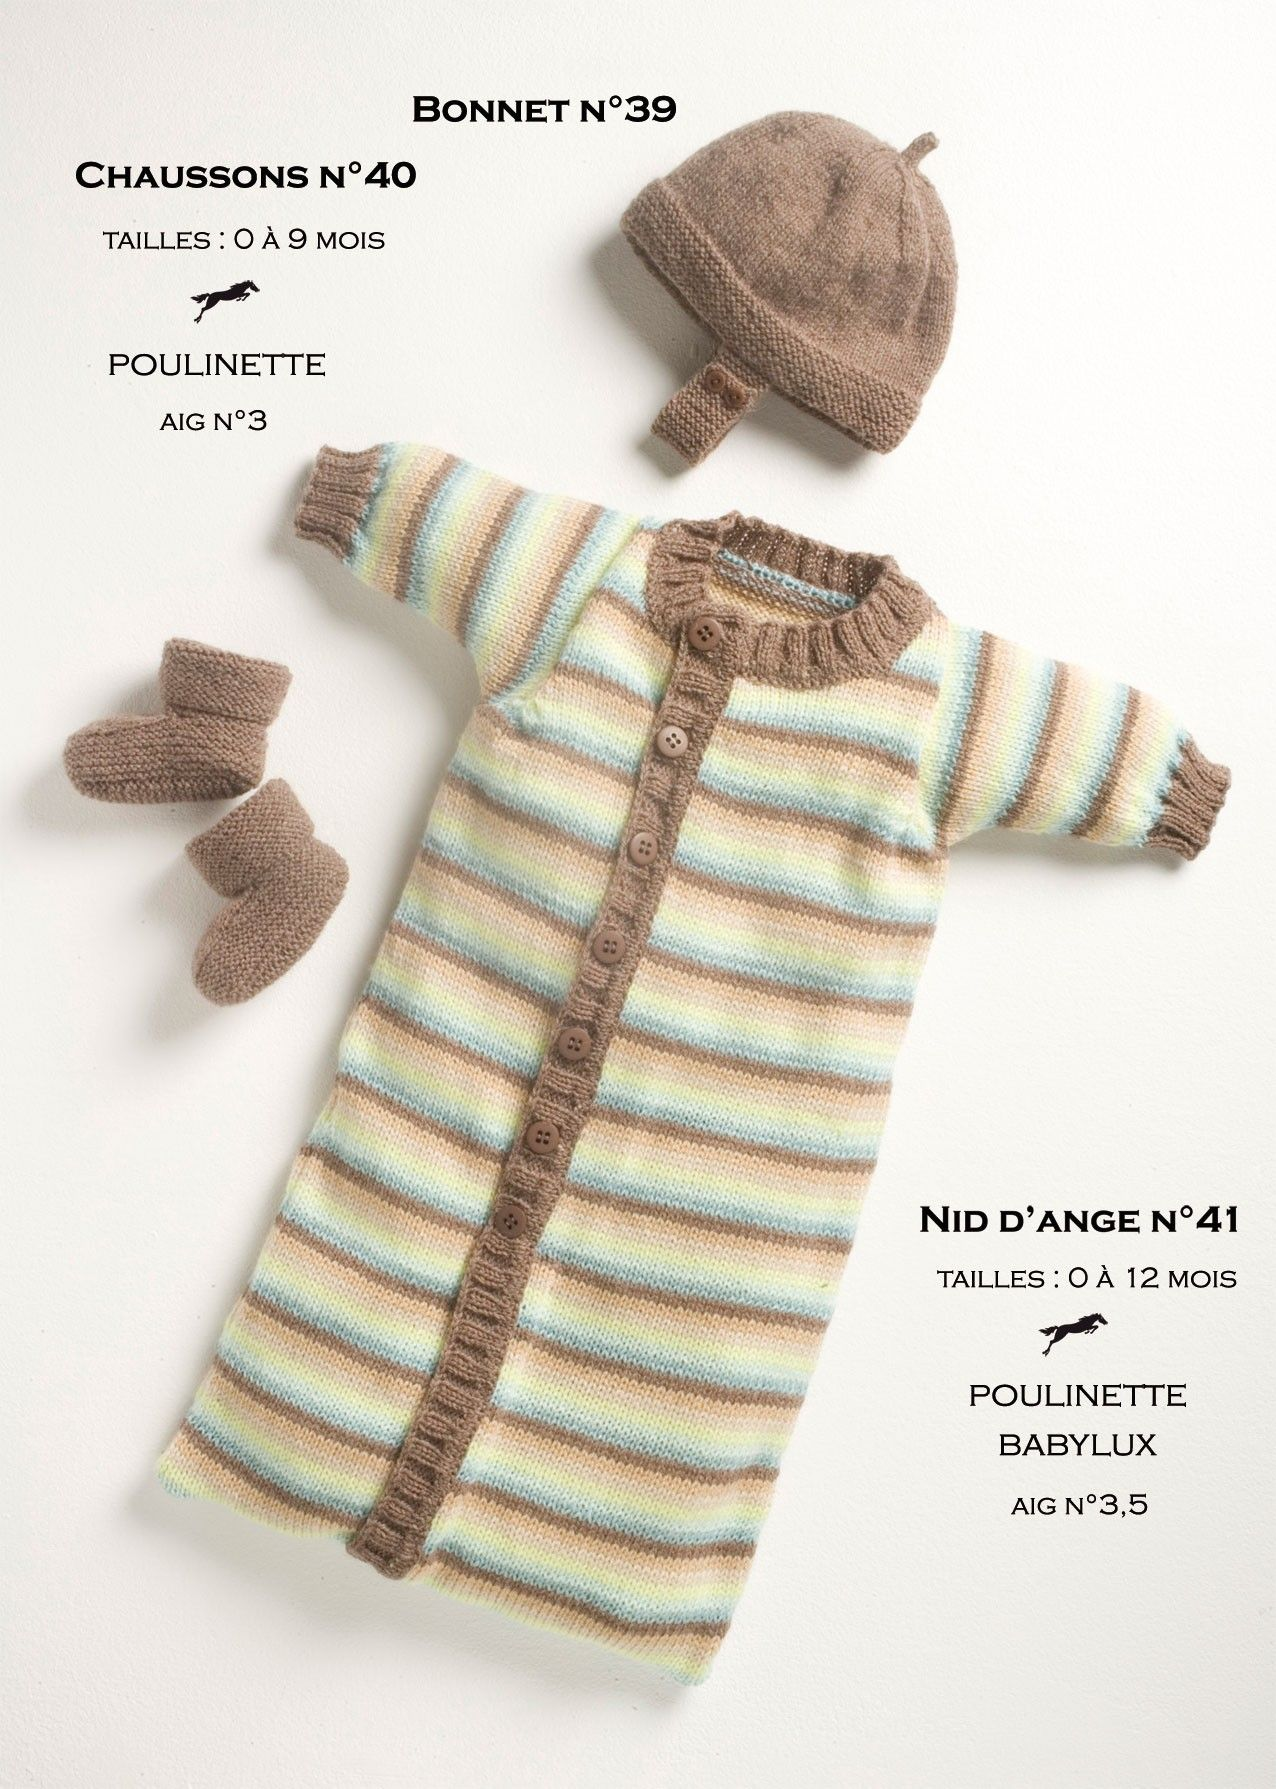 Pin de Deborah Urzo en Knit~Babies/Children | Pinterest